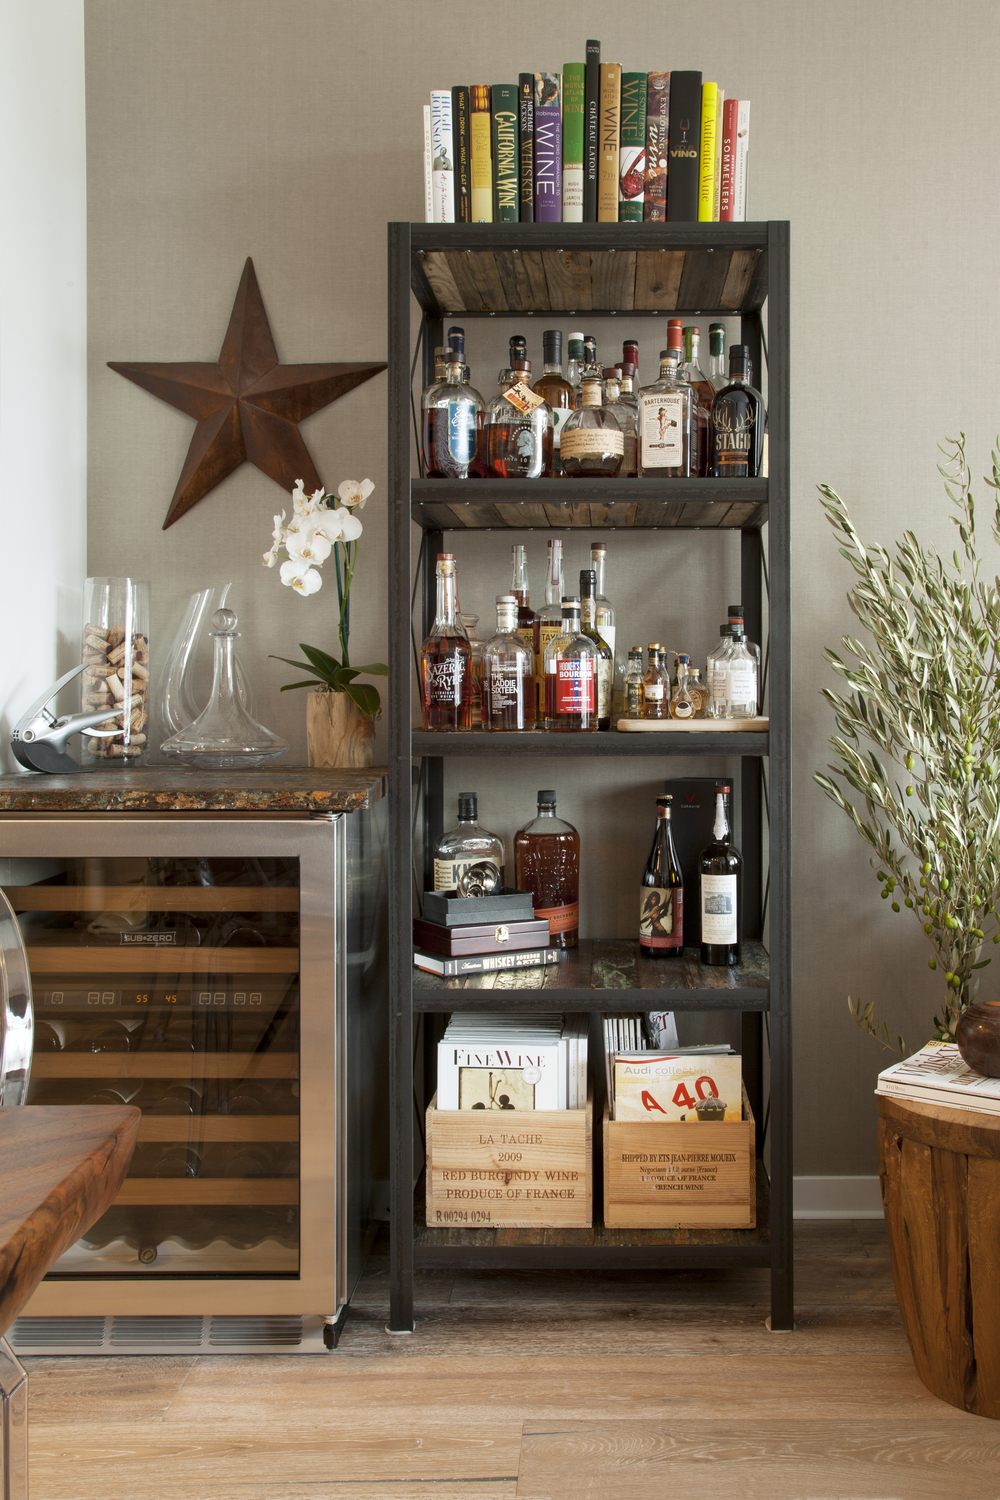 Liquor shelf and wine fridge